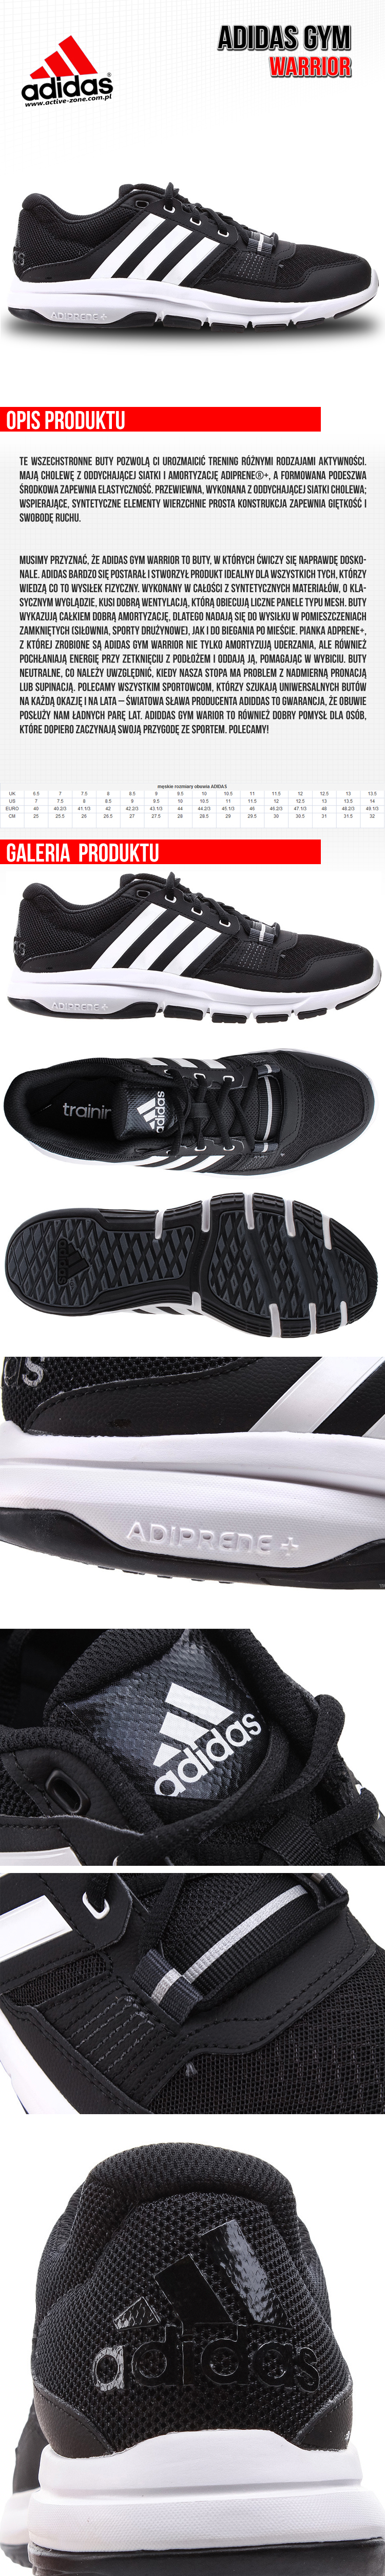 Adidas Gym Warrior 1